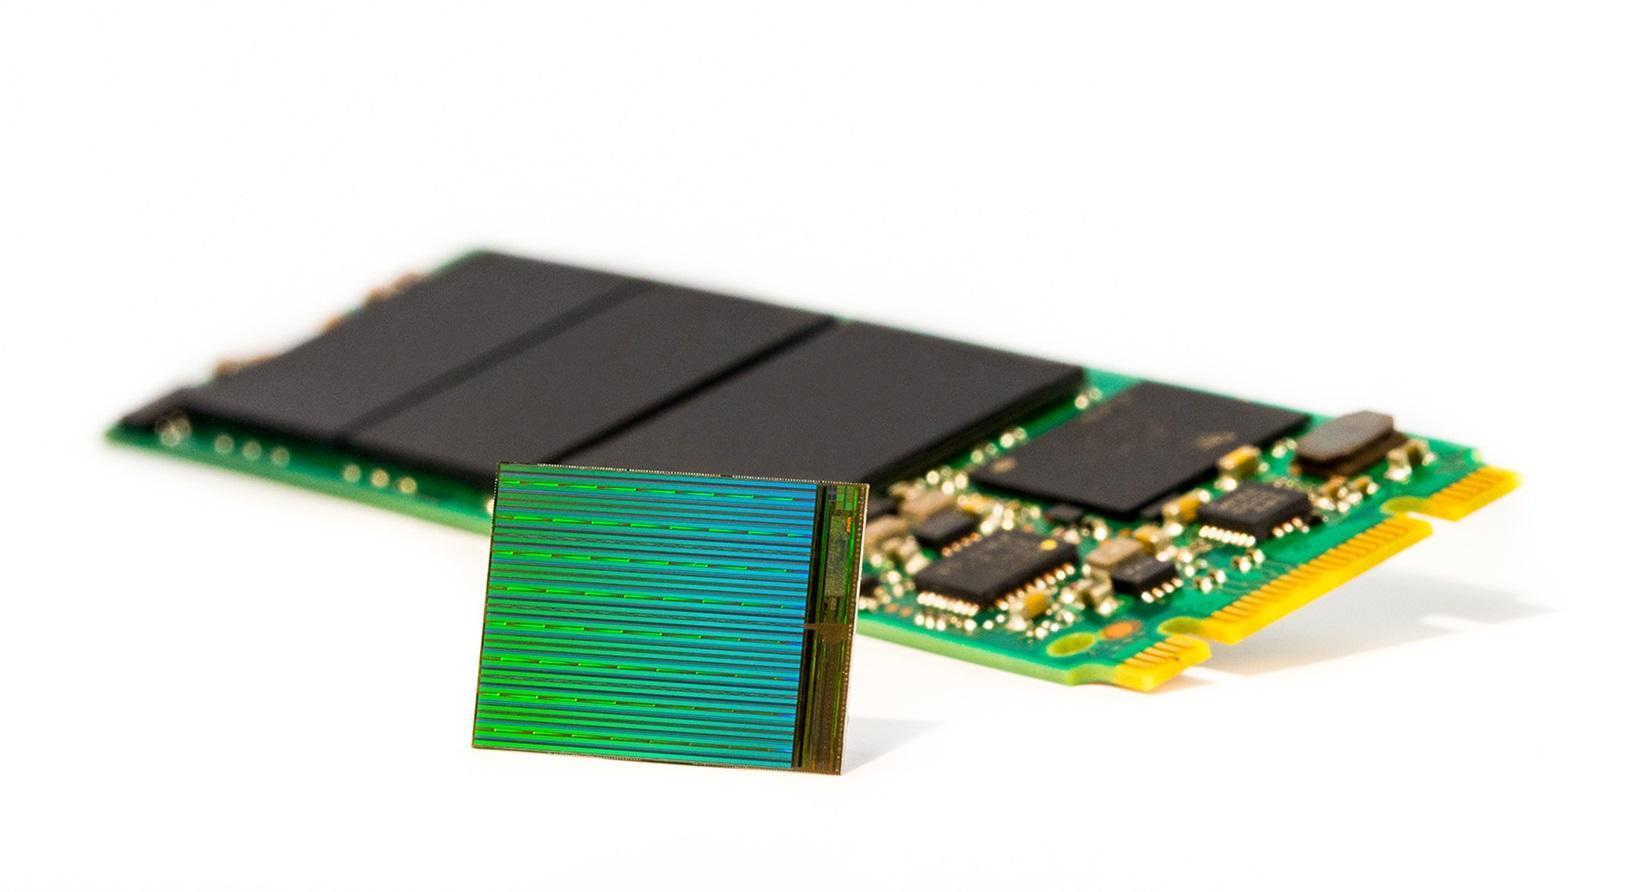 New 3D NAND flash memory from Intel, Micron could result in 10-terabyte SSDs